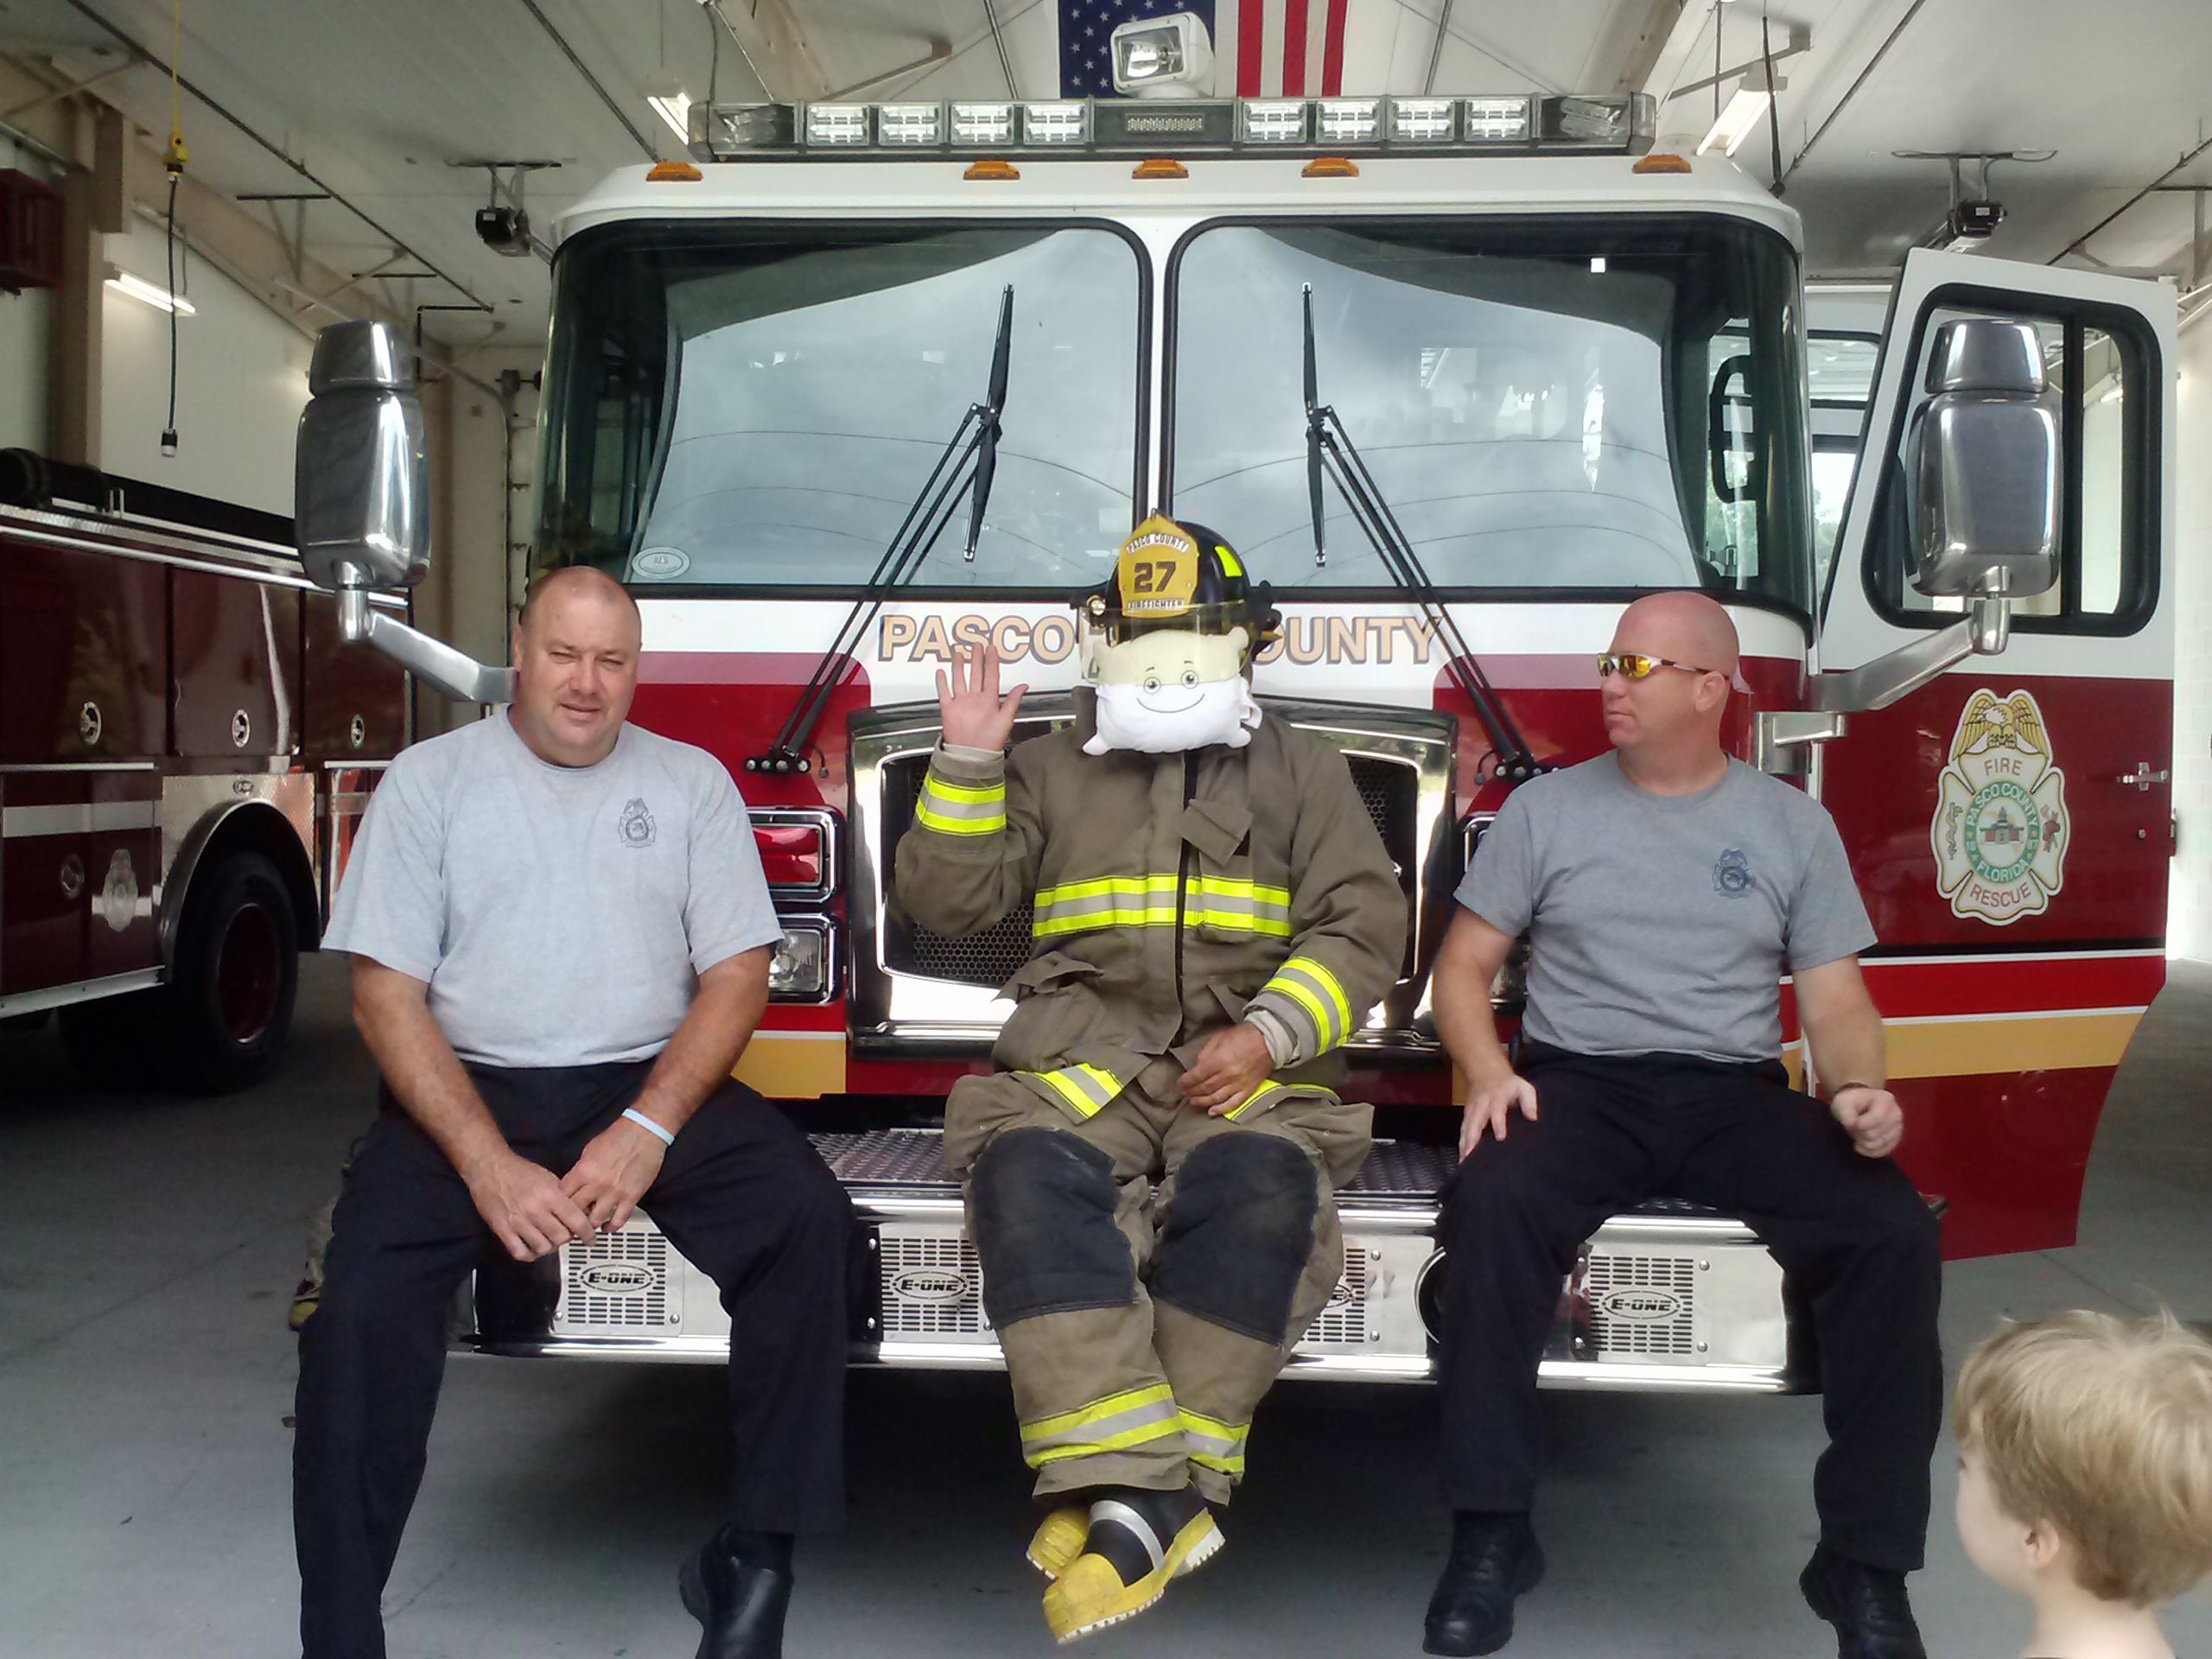 McStuffy visits the firehouse and meets firemen!